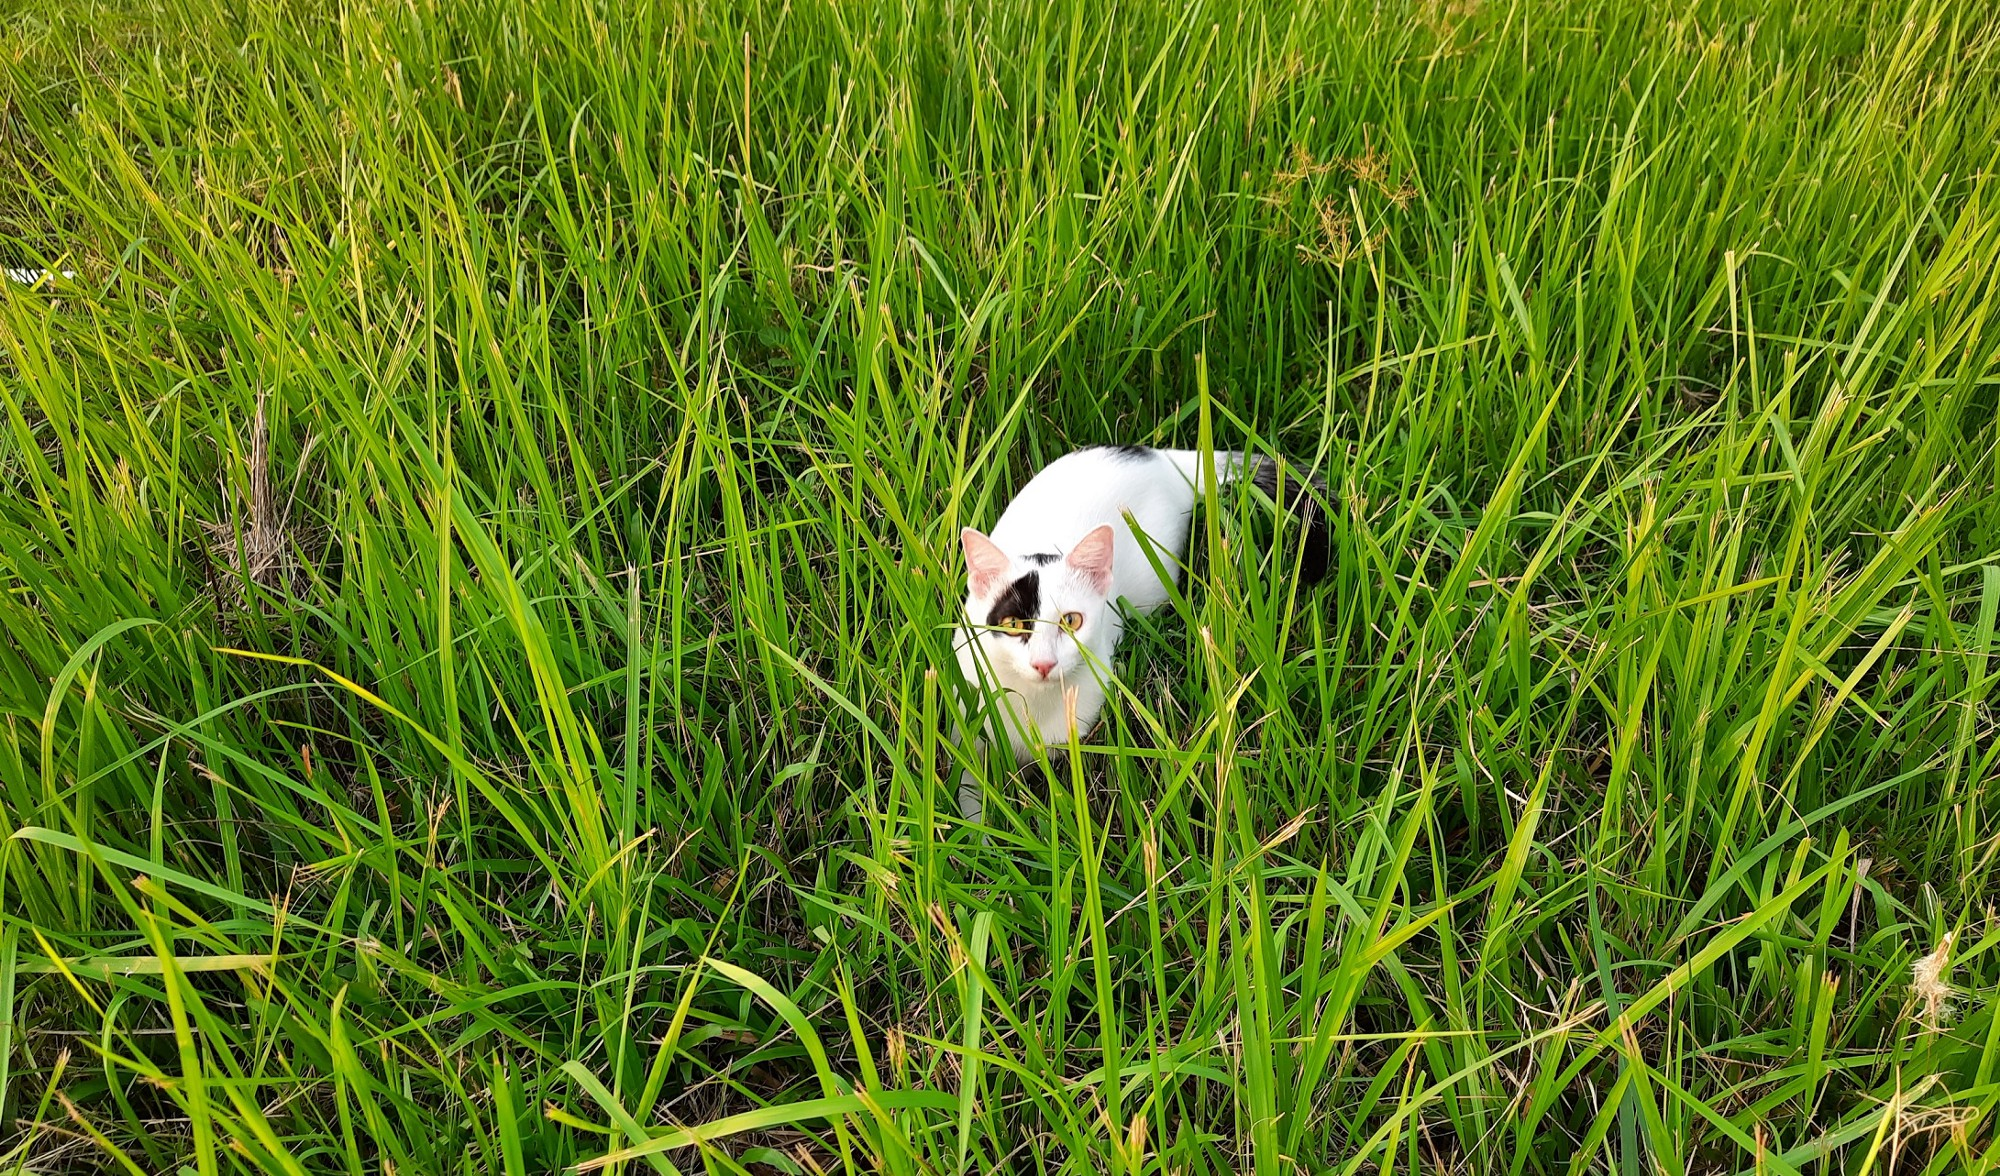 My cat Mini is hunting flies in the grass